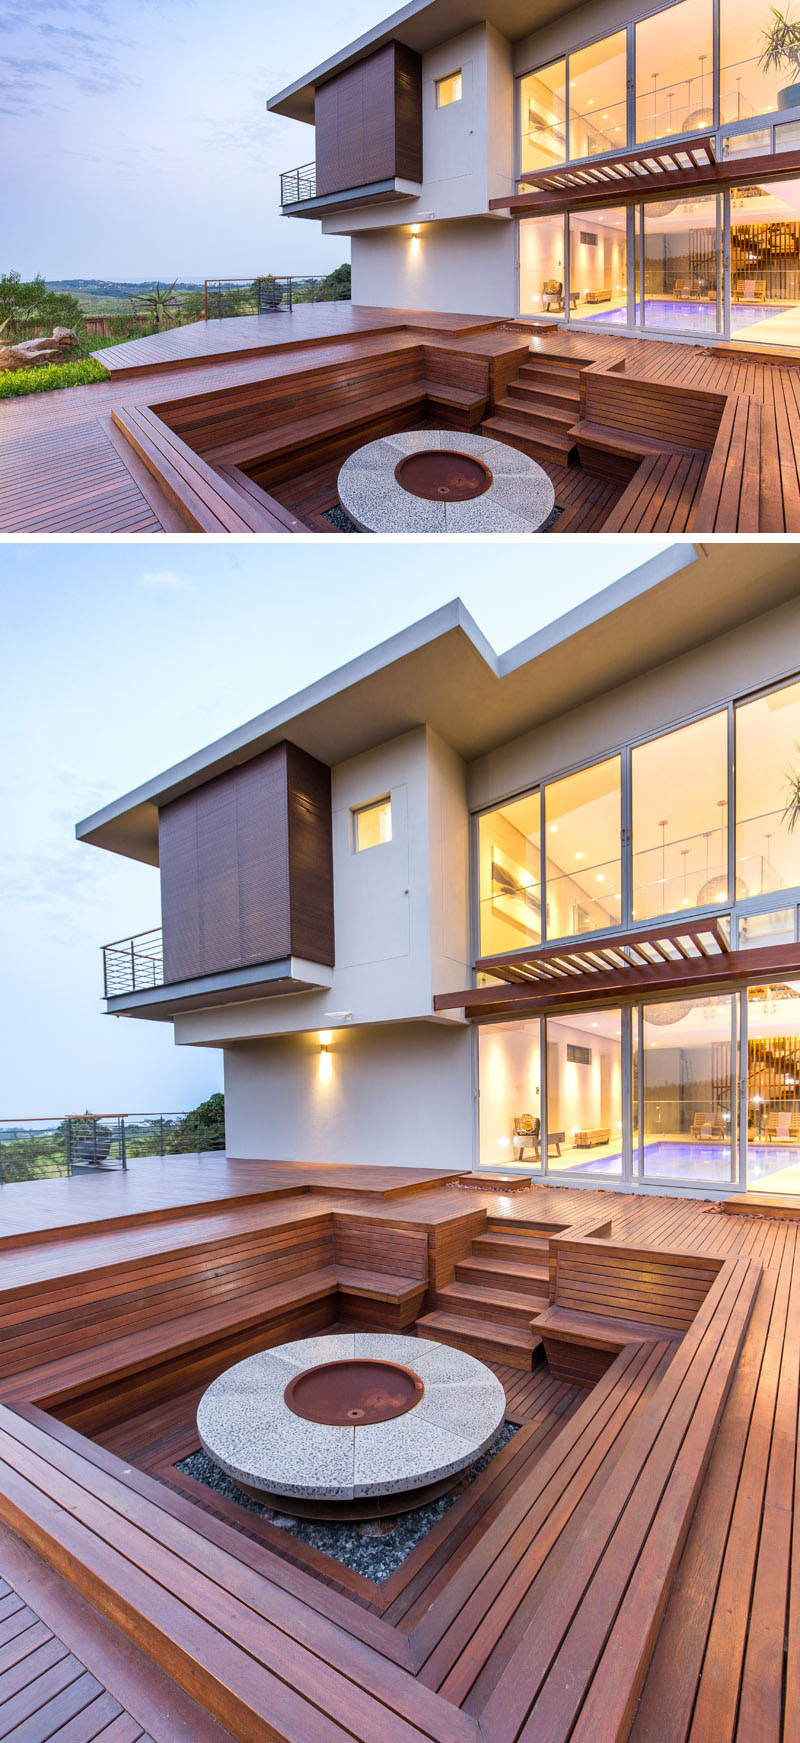 This modern house has a large wood deck that's home to a sunken wood firepit with built-in benches, ideal for outdoor entertaining and star gazing.